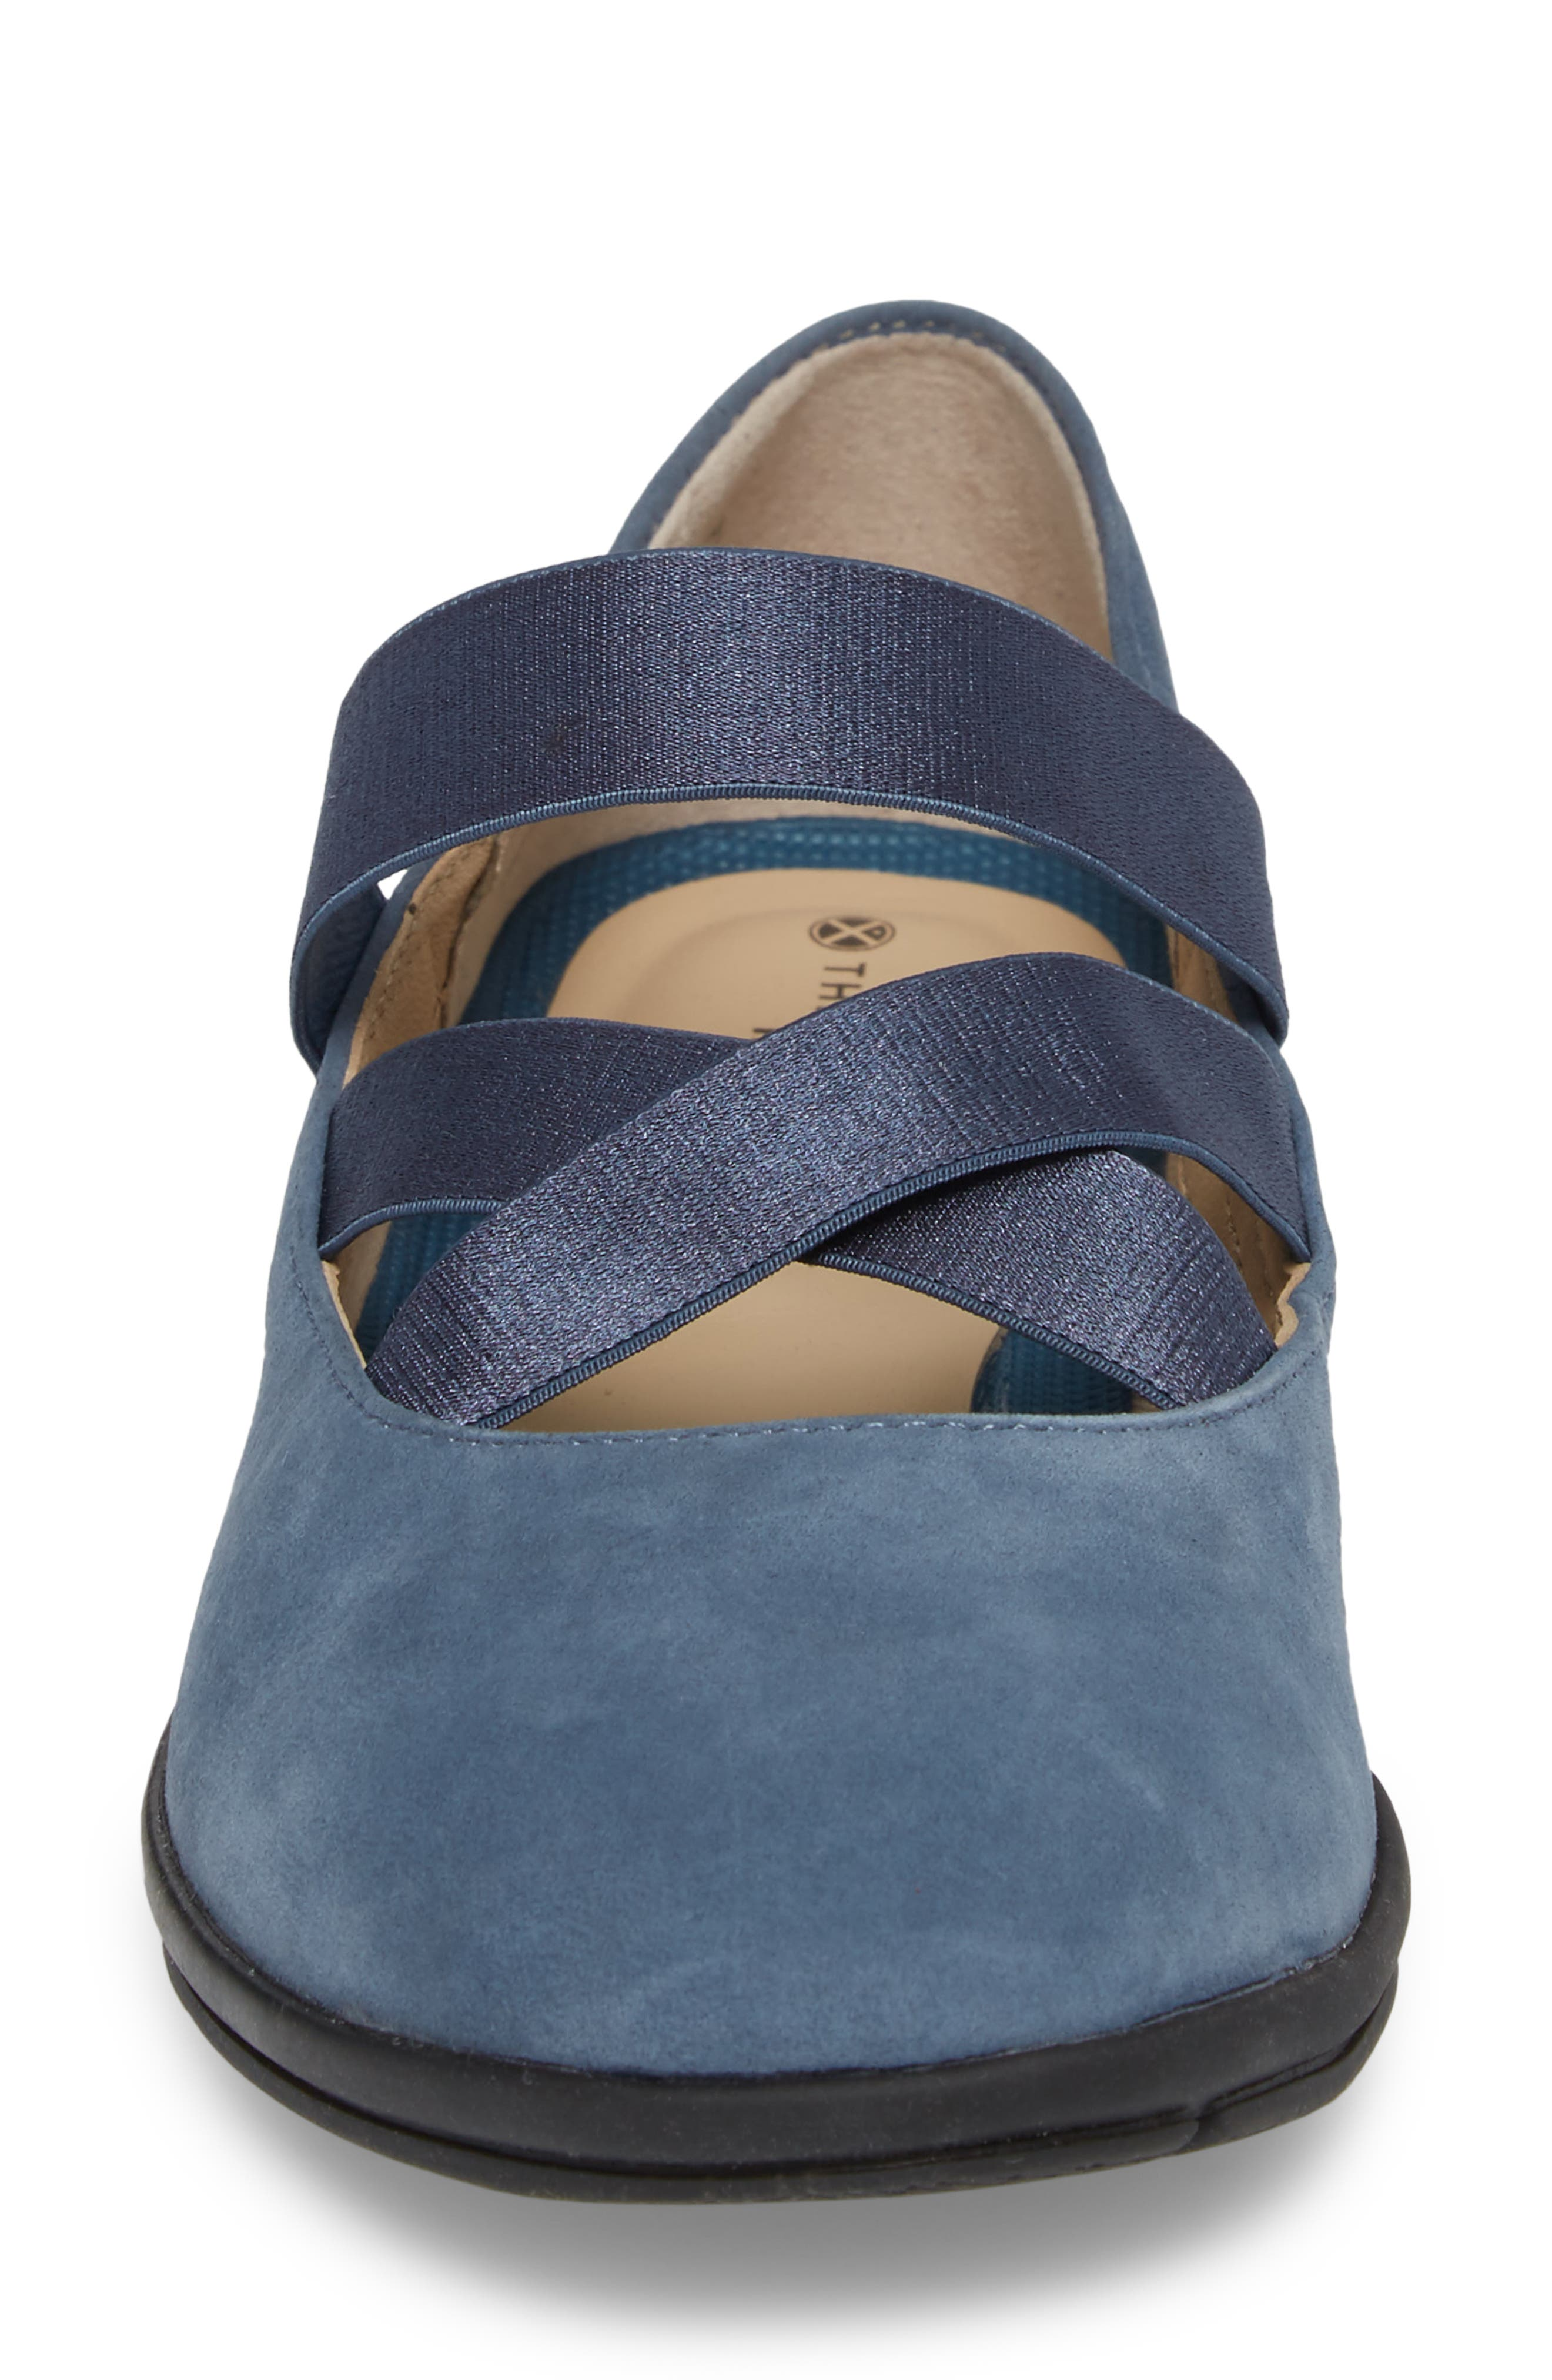 Meree Madrine Cross Strap Flat,                             Alternate thumbnail 4, color,                             Vintage Indigo Nubuck Leather